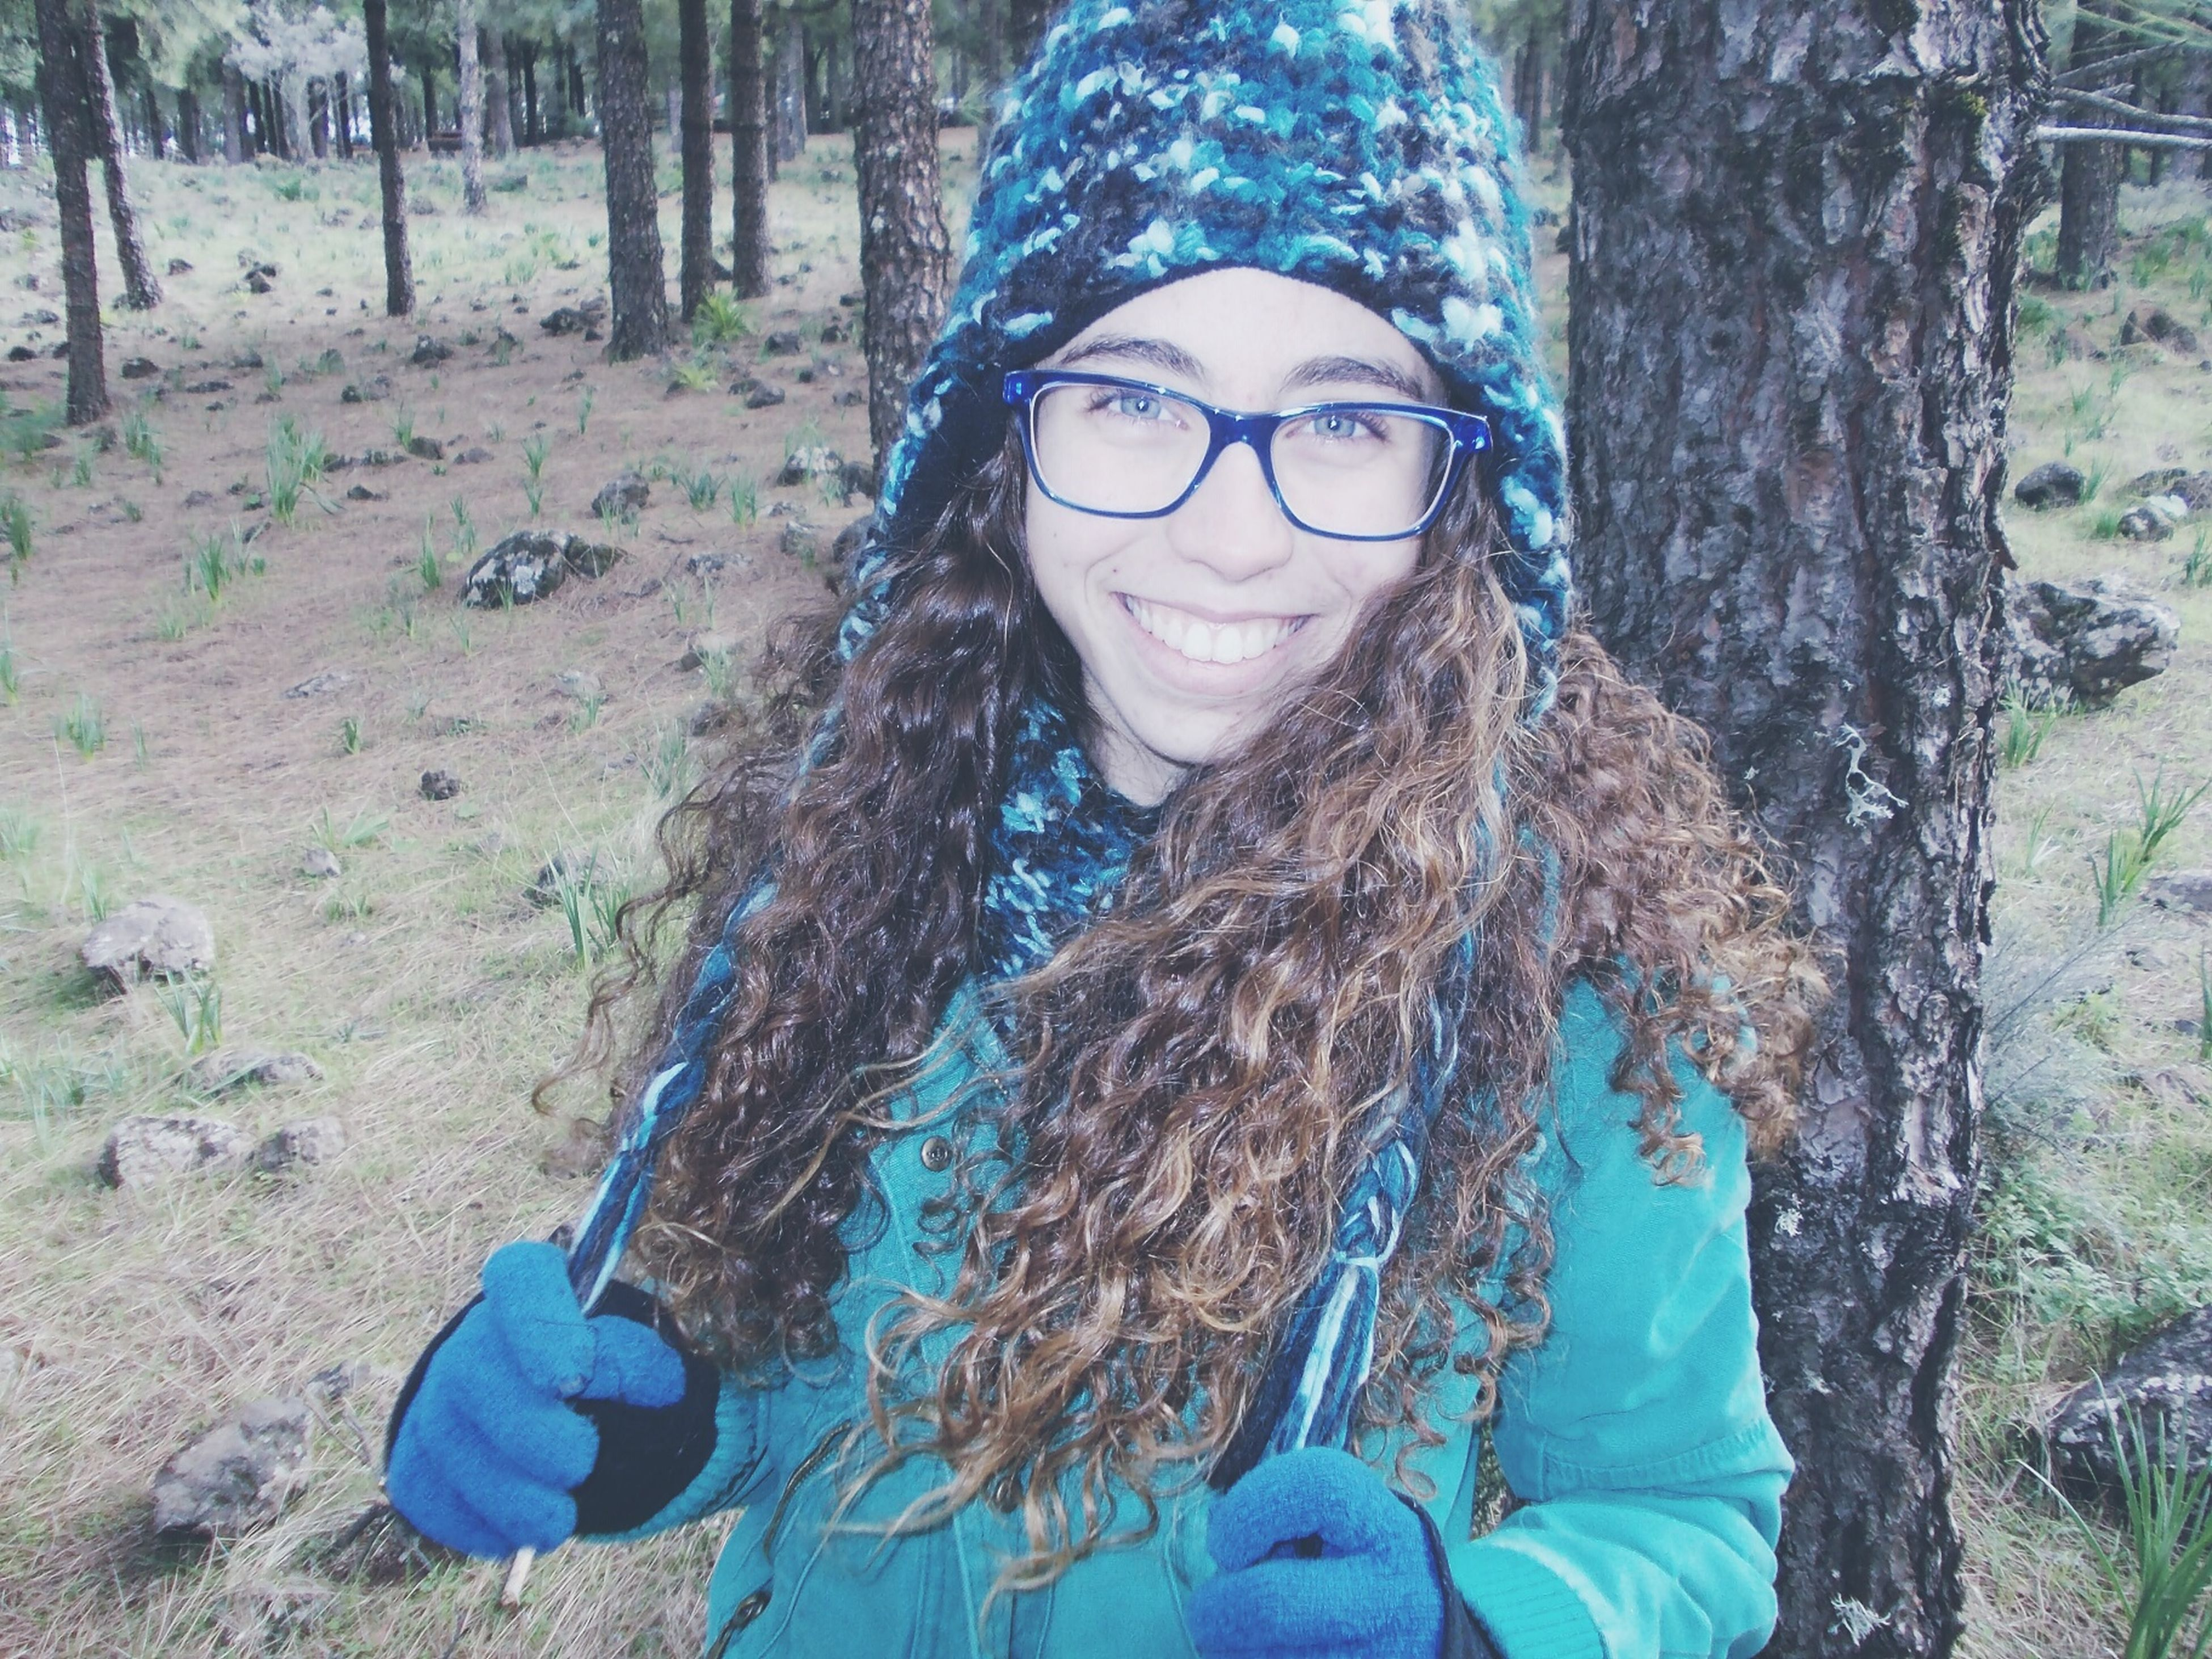 lifestyles, leisure activity, portrait, looking at camera, young adult, person, front view, casual clothing, sunglasses, headshot, tree, young women, smiling, happiness, standing, day, outdoors, forest